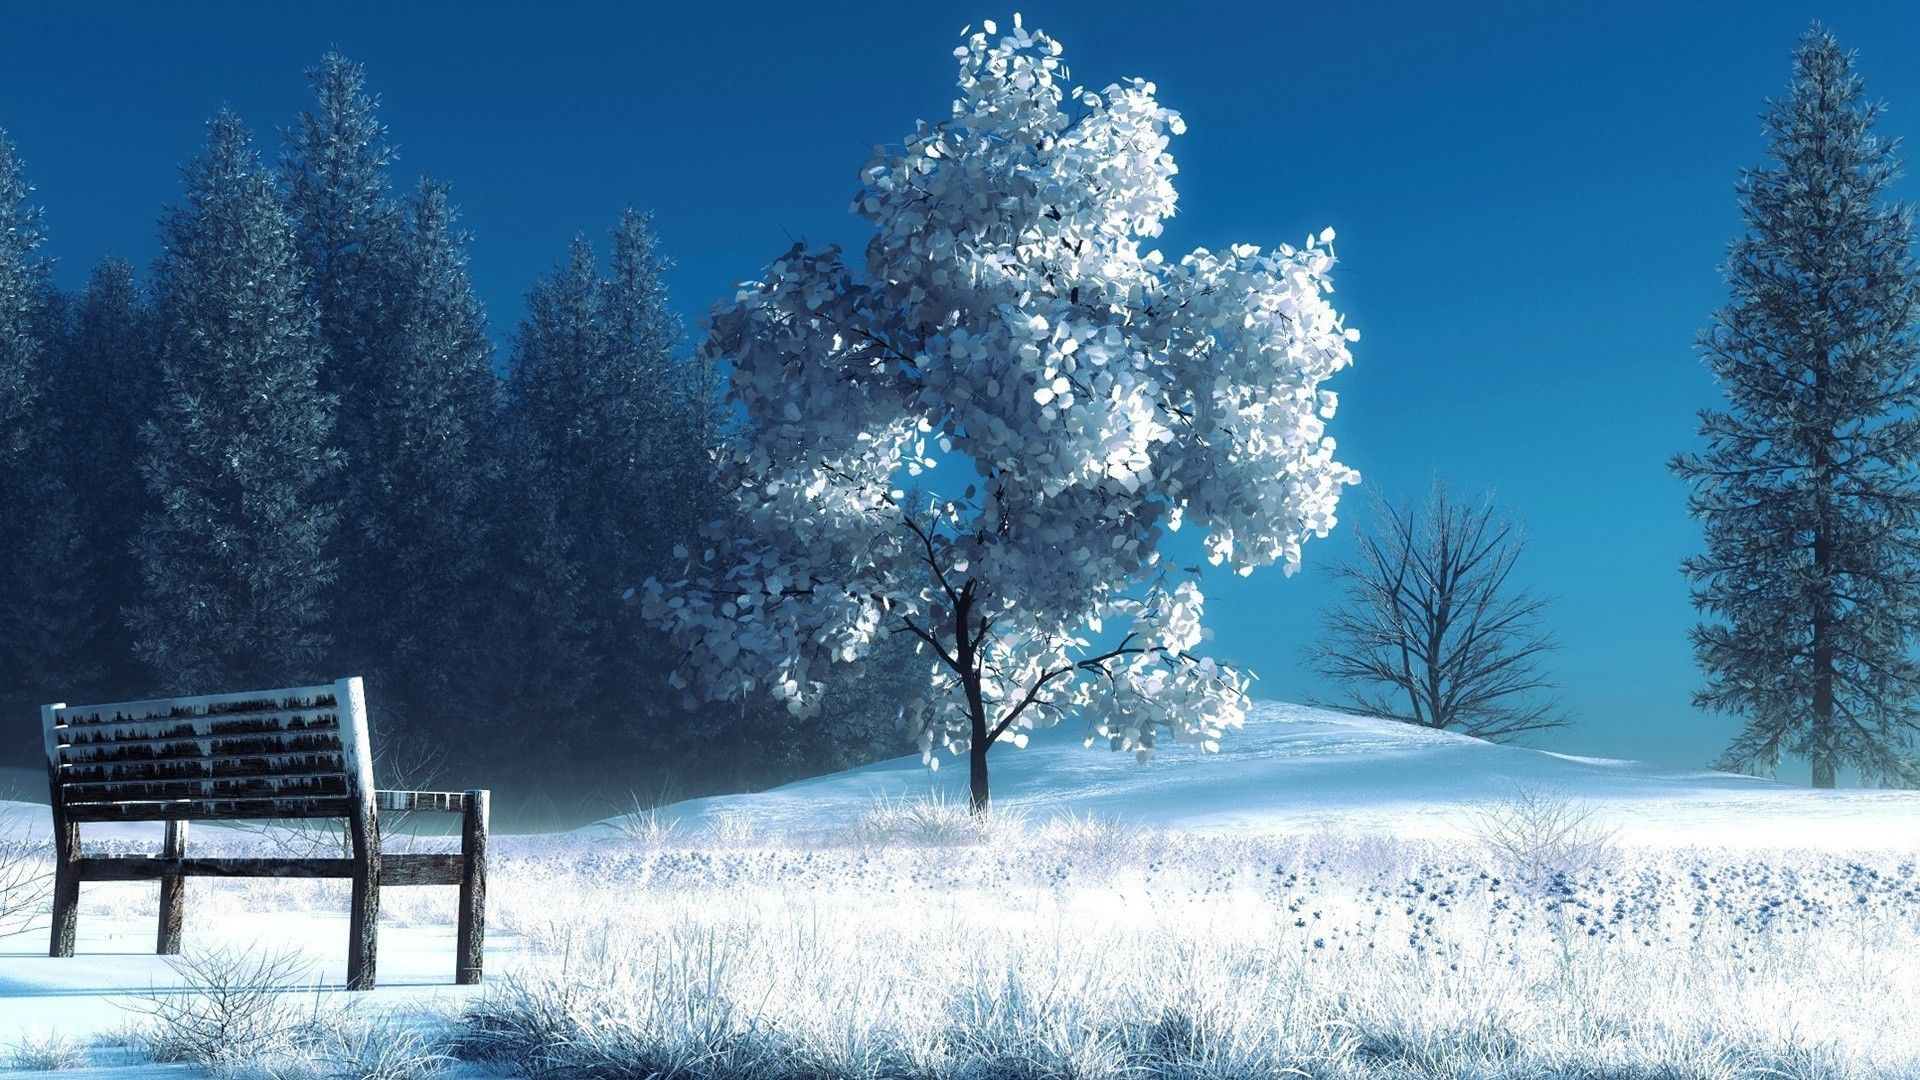 Free Winter picture download